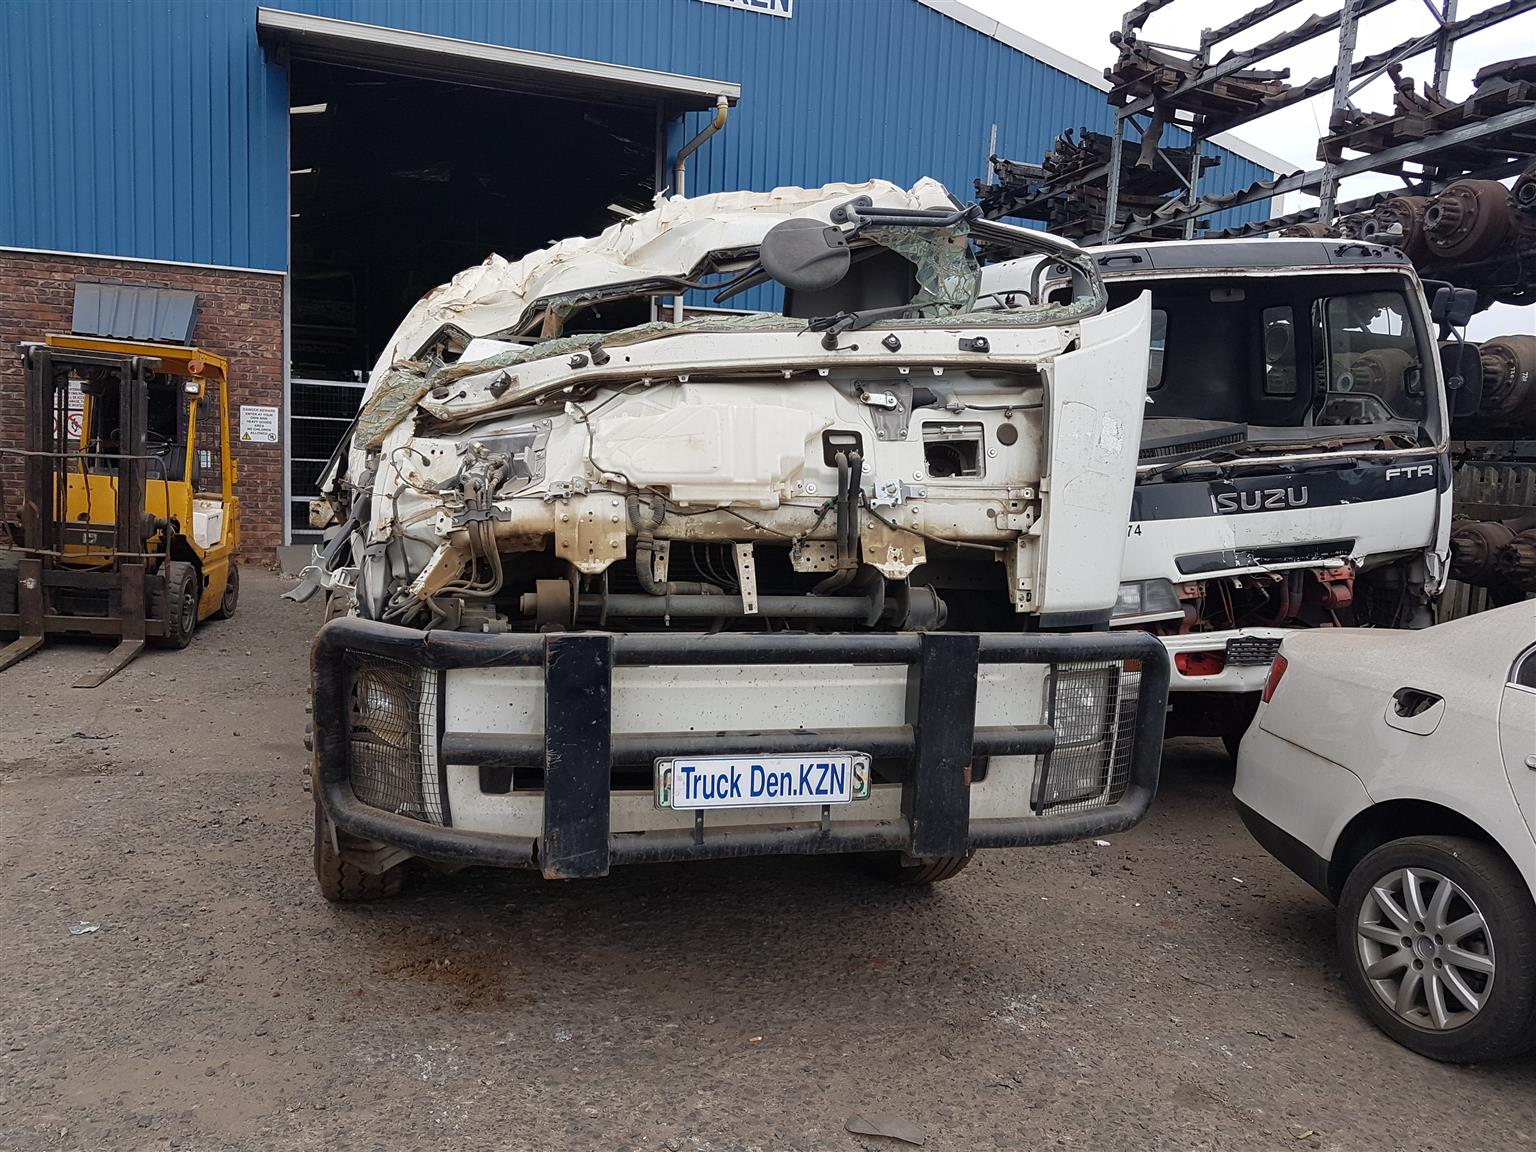 ISUZU FTR 850 AMT- Smoother Truck - Stripping for parts .